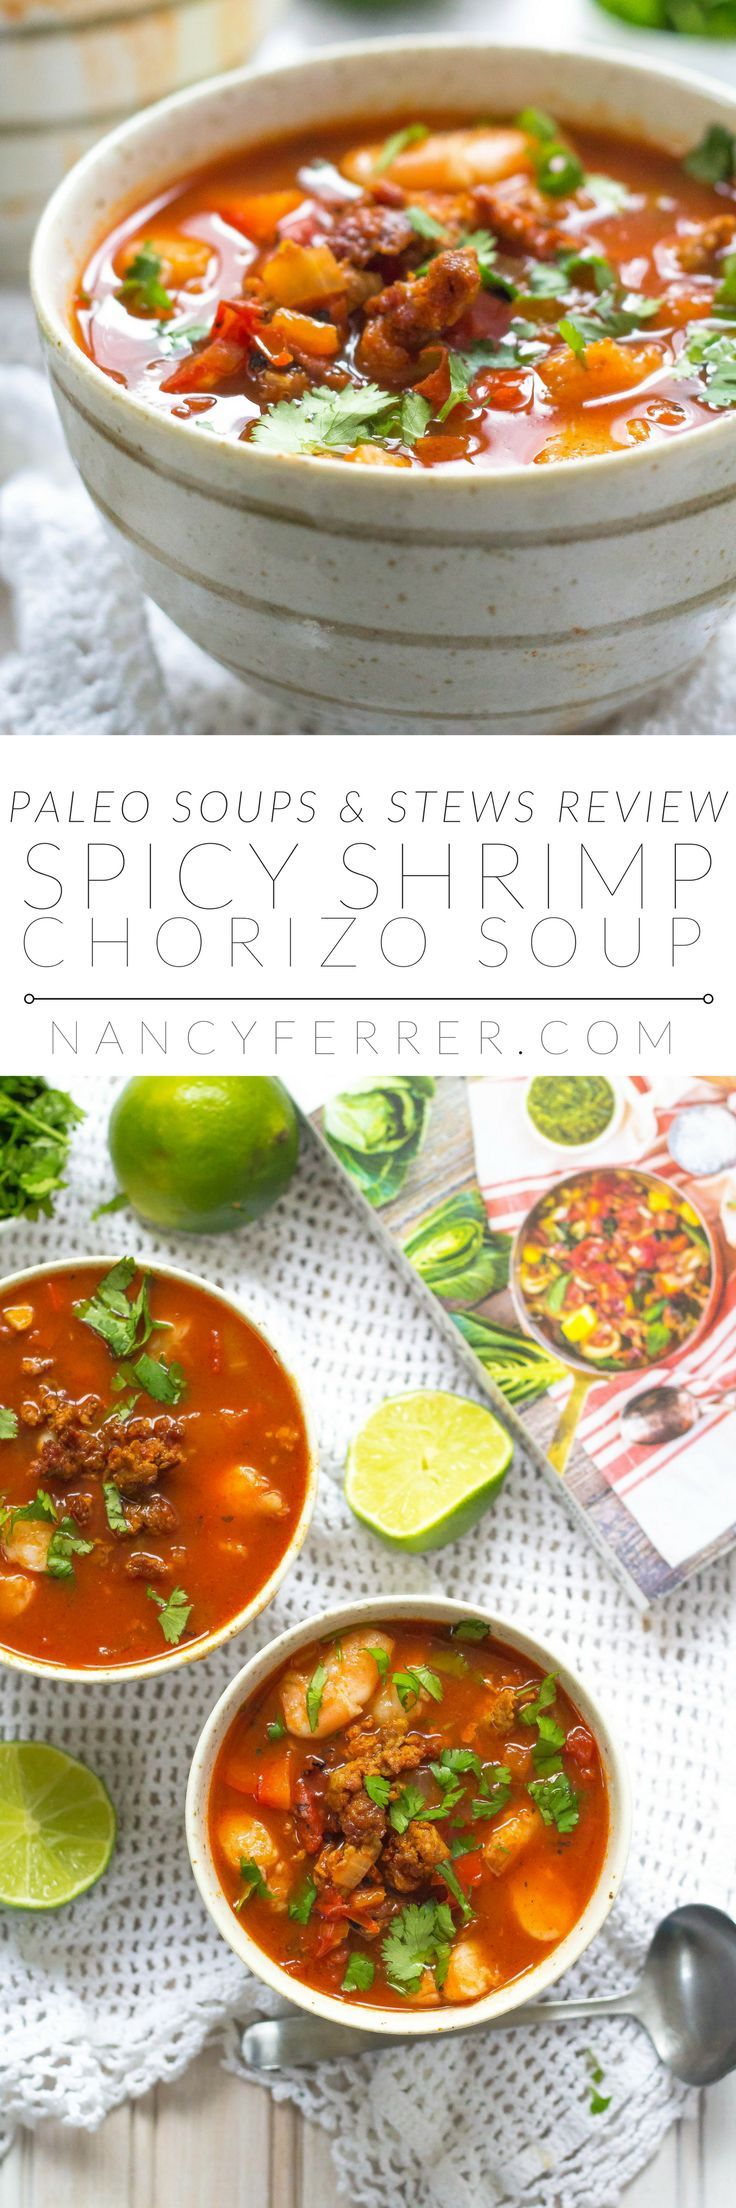 Spicy Shrimp and Chorizo Soup | http://nancyferrer.com/spicy-shrimp-chorizo-soup/